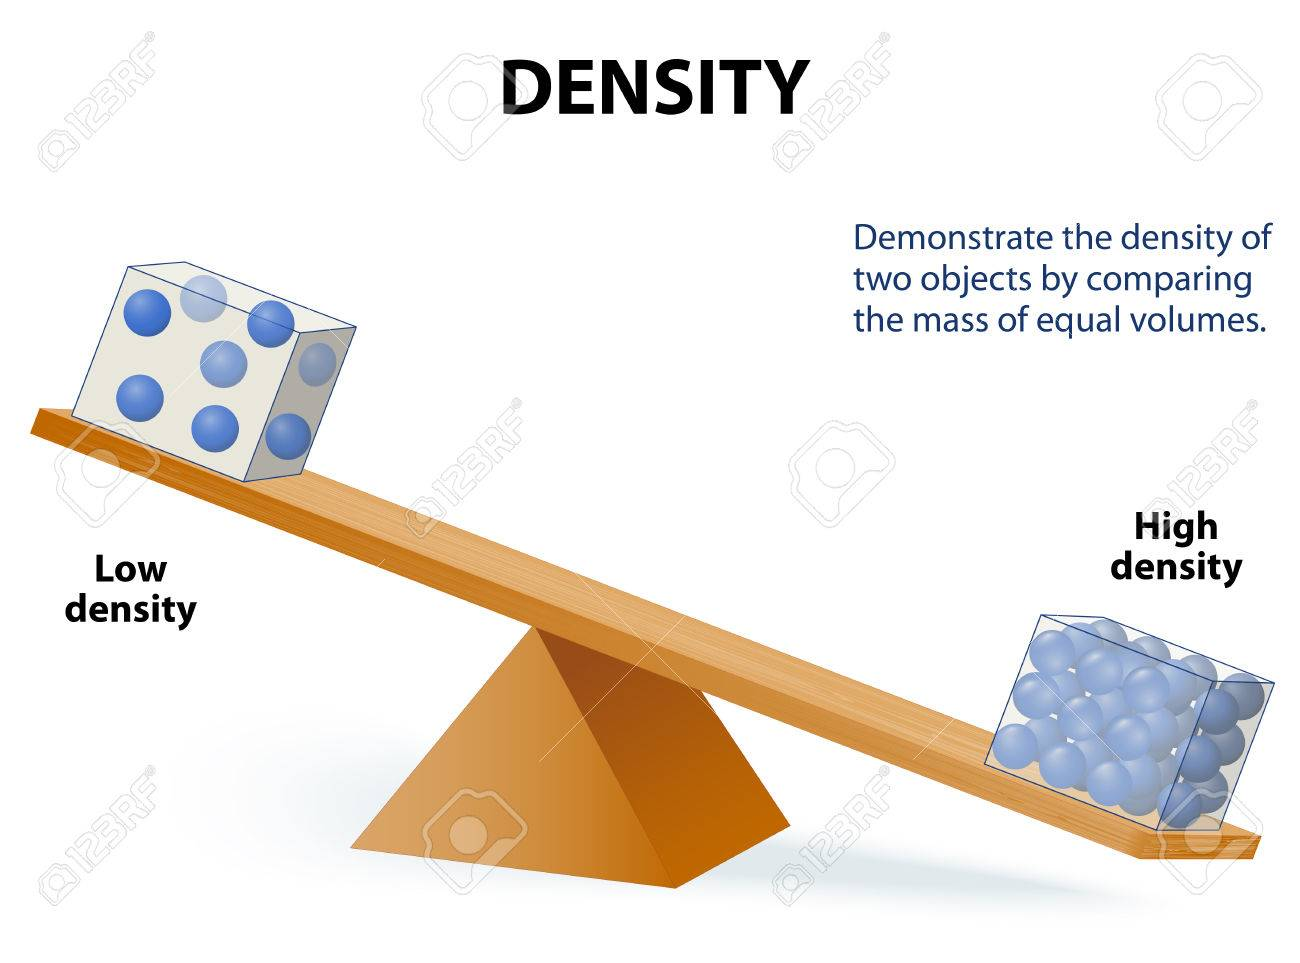 density demonstrate the density of two objects by comparing